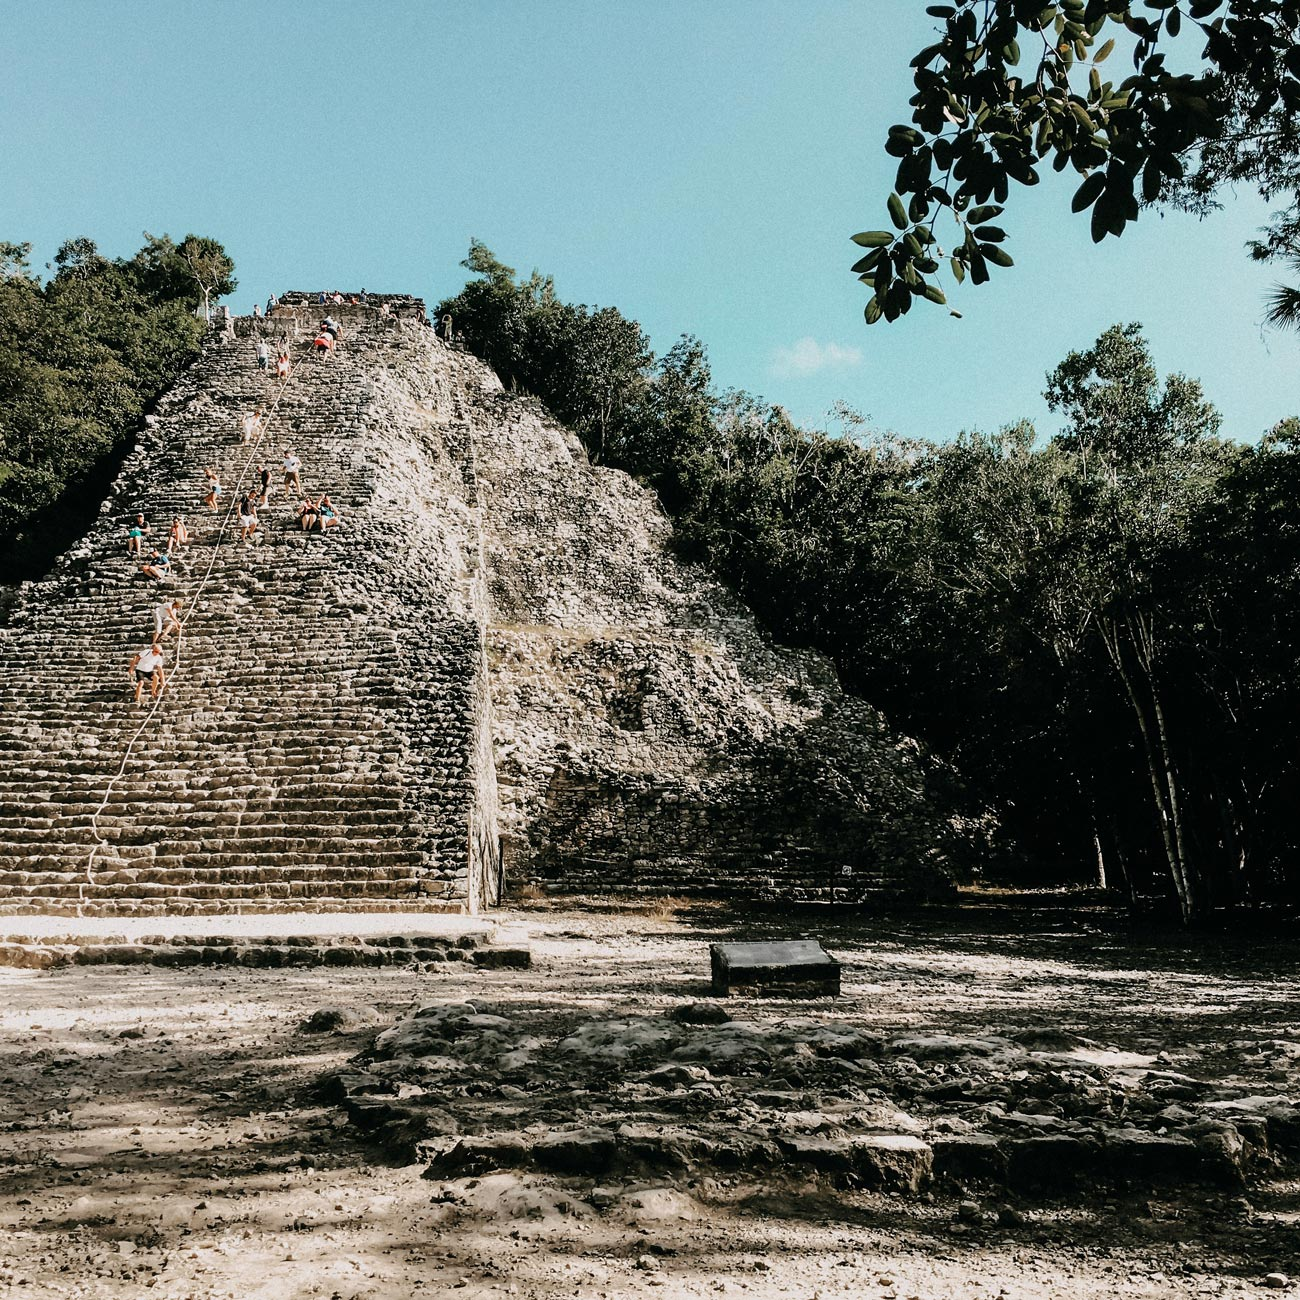 Pyramids of Tulum Mexico